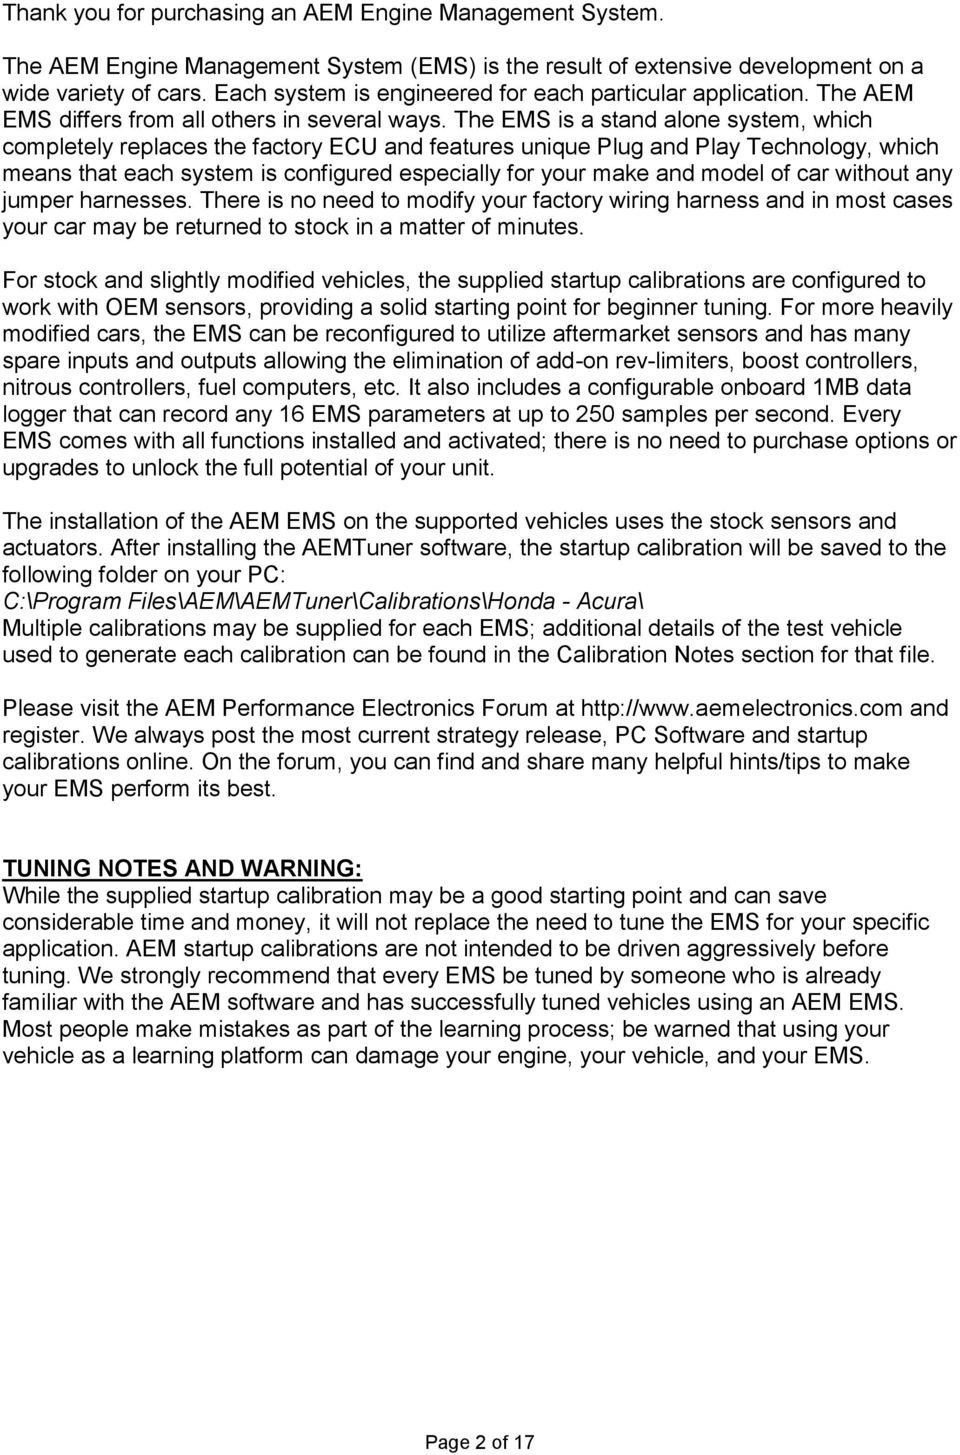 Installation Instructions For Ems P N Pdf Obd2 Civic Ecu Wiring Diagram Further Push Button Start The Is A Stand Alone System Which Completely Replaces Factory And Features